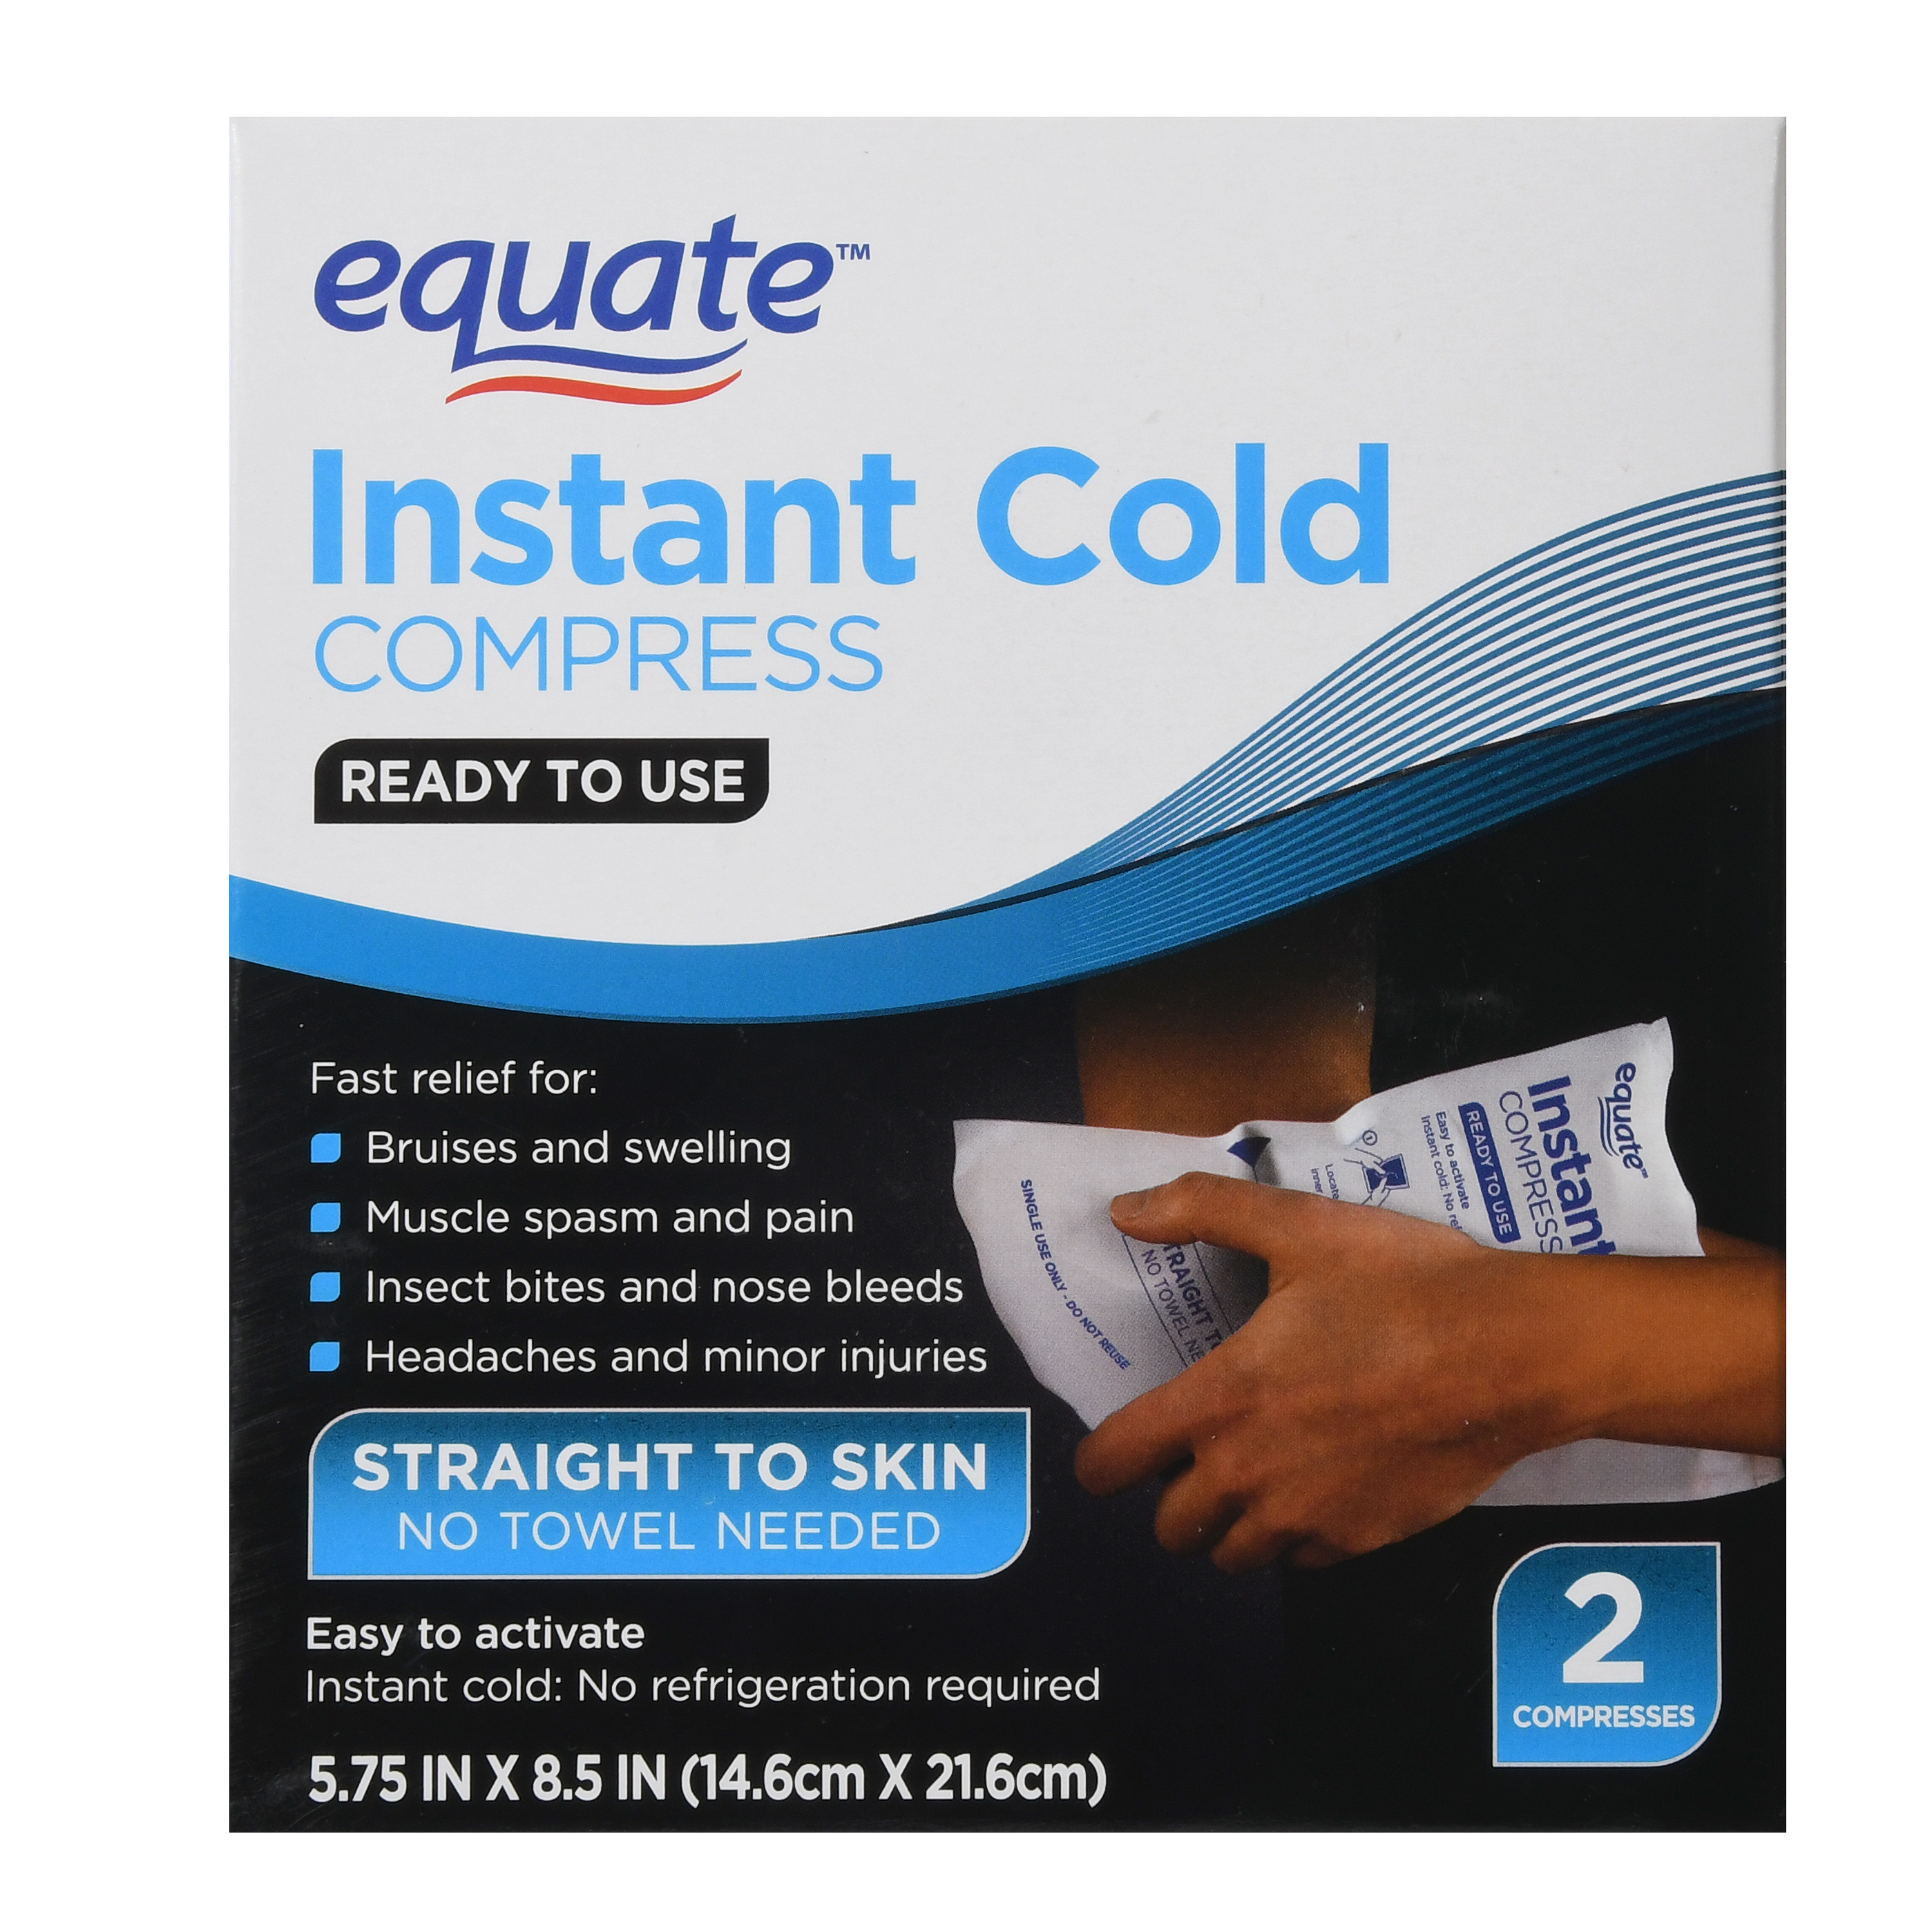 Equate Instant Cold Compress, 5.75 inches X 8.5 inches, 2 Ct